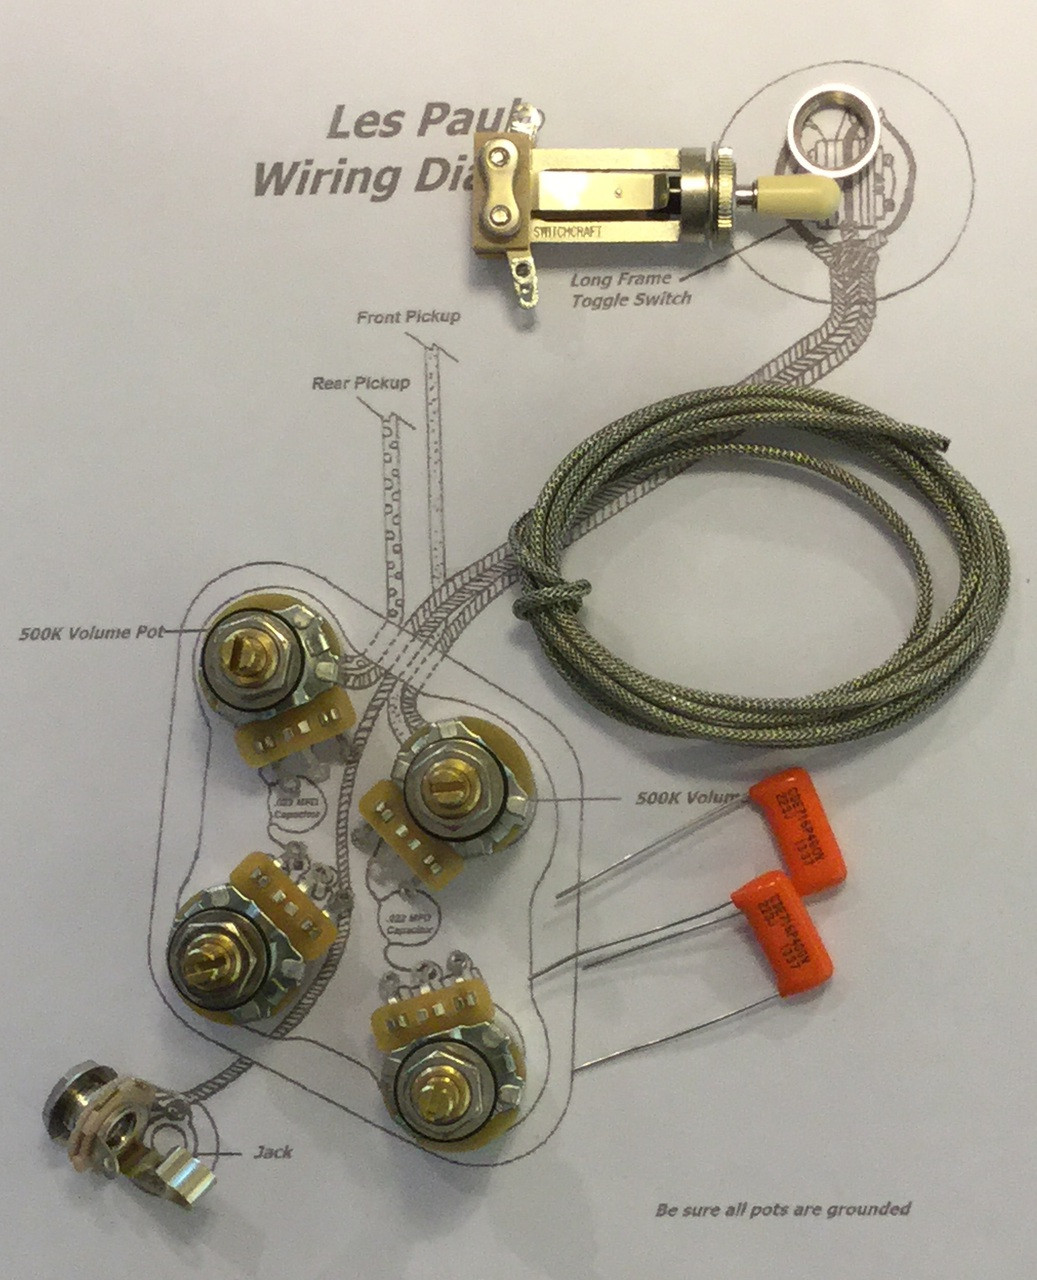 Les Paul Wiring Set Simple Diagram Schematic Kit Gibson Long Shaft Cts Taot 500kxl Pots Goldtop